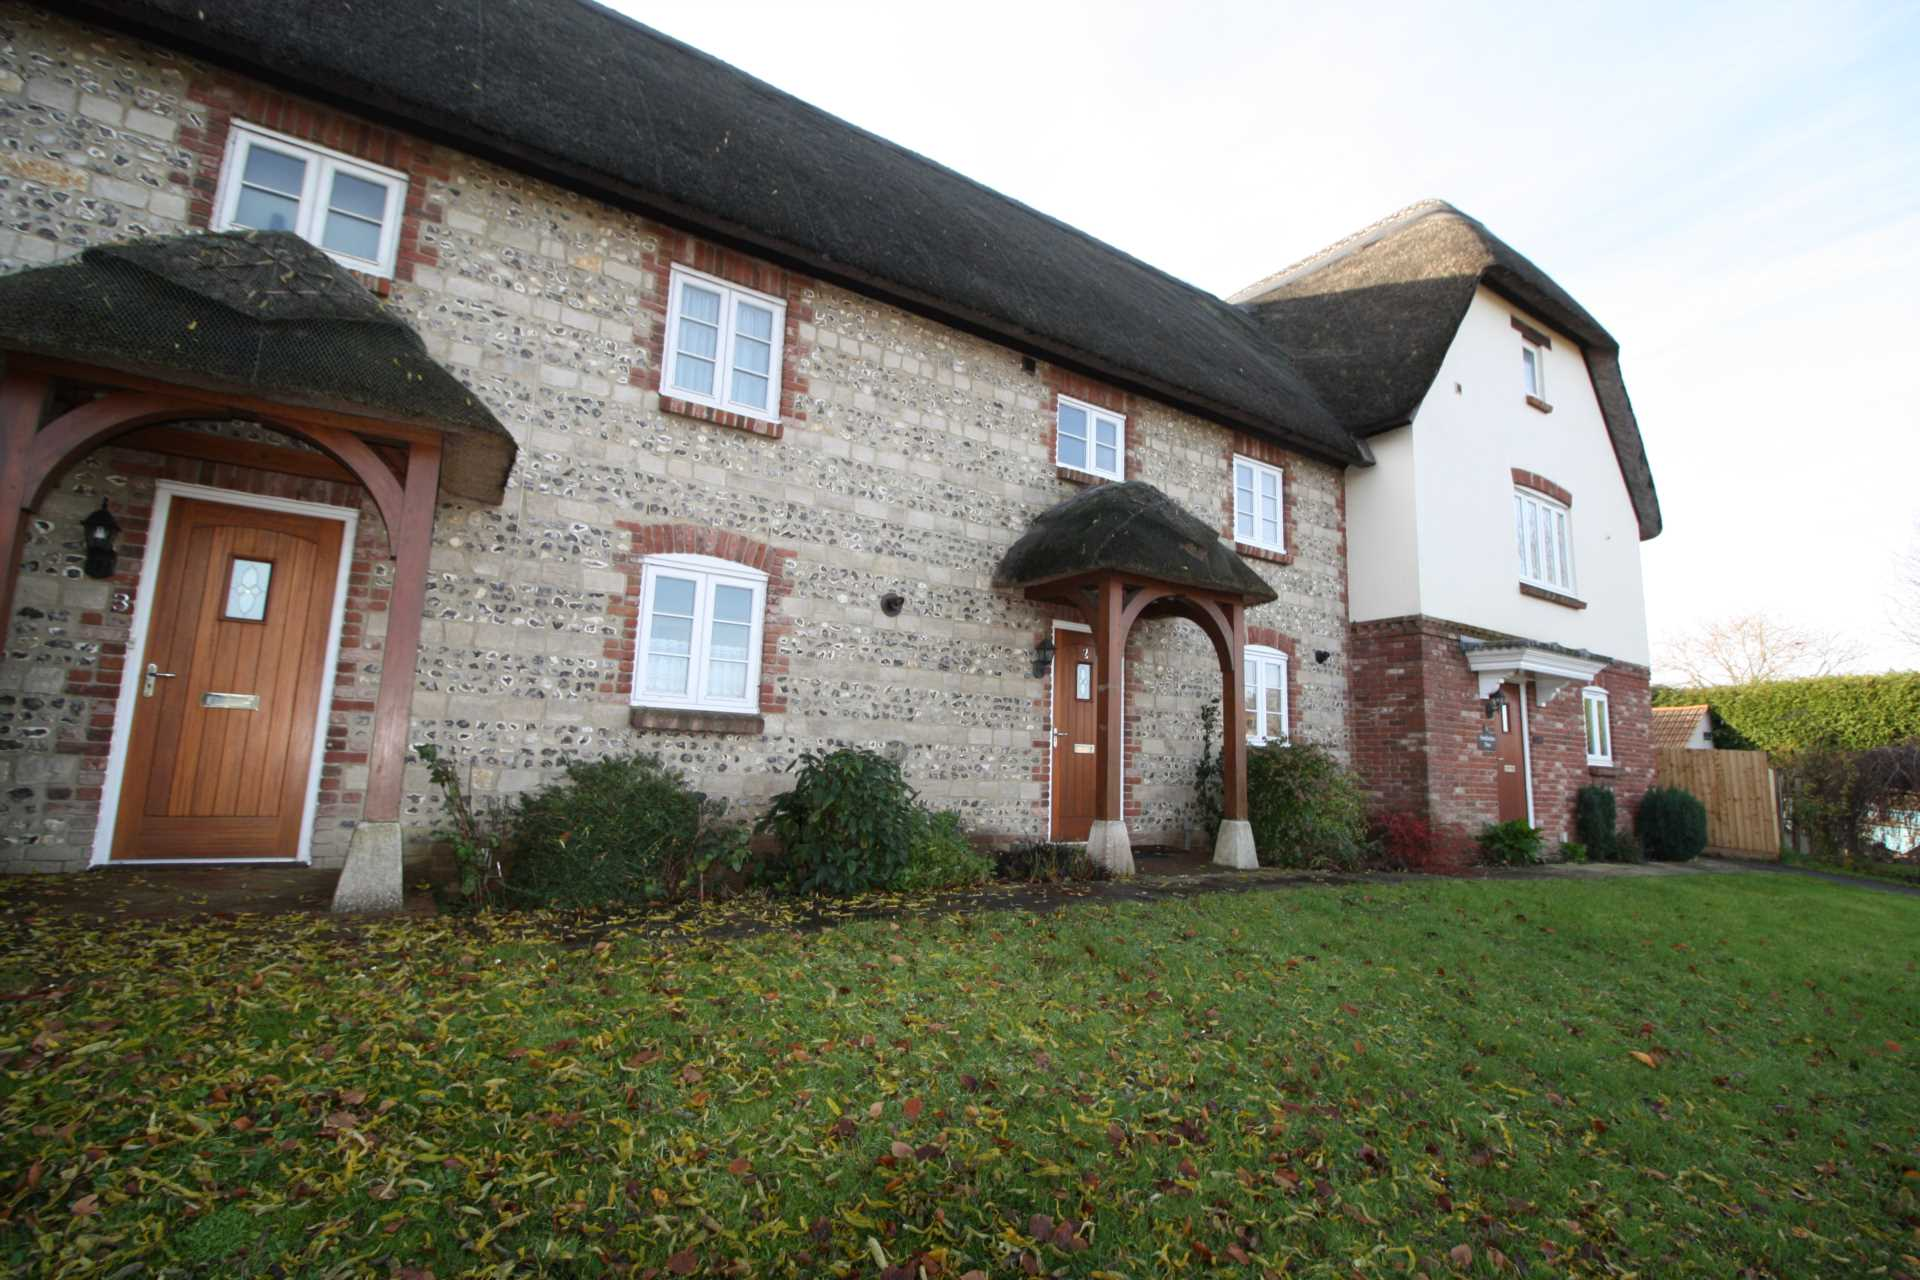 2 bed terraced house to rent in Hambledon Row, Shillingstone, Blandford Forum 0